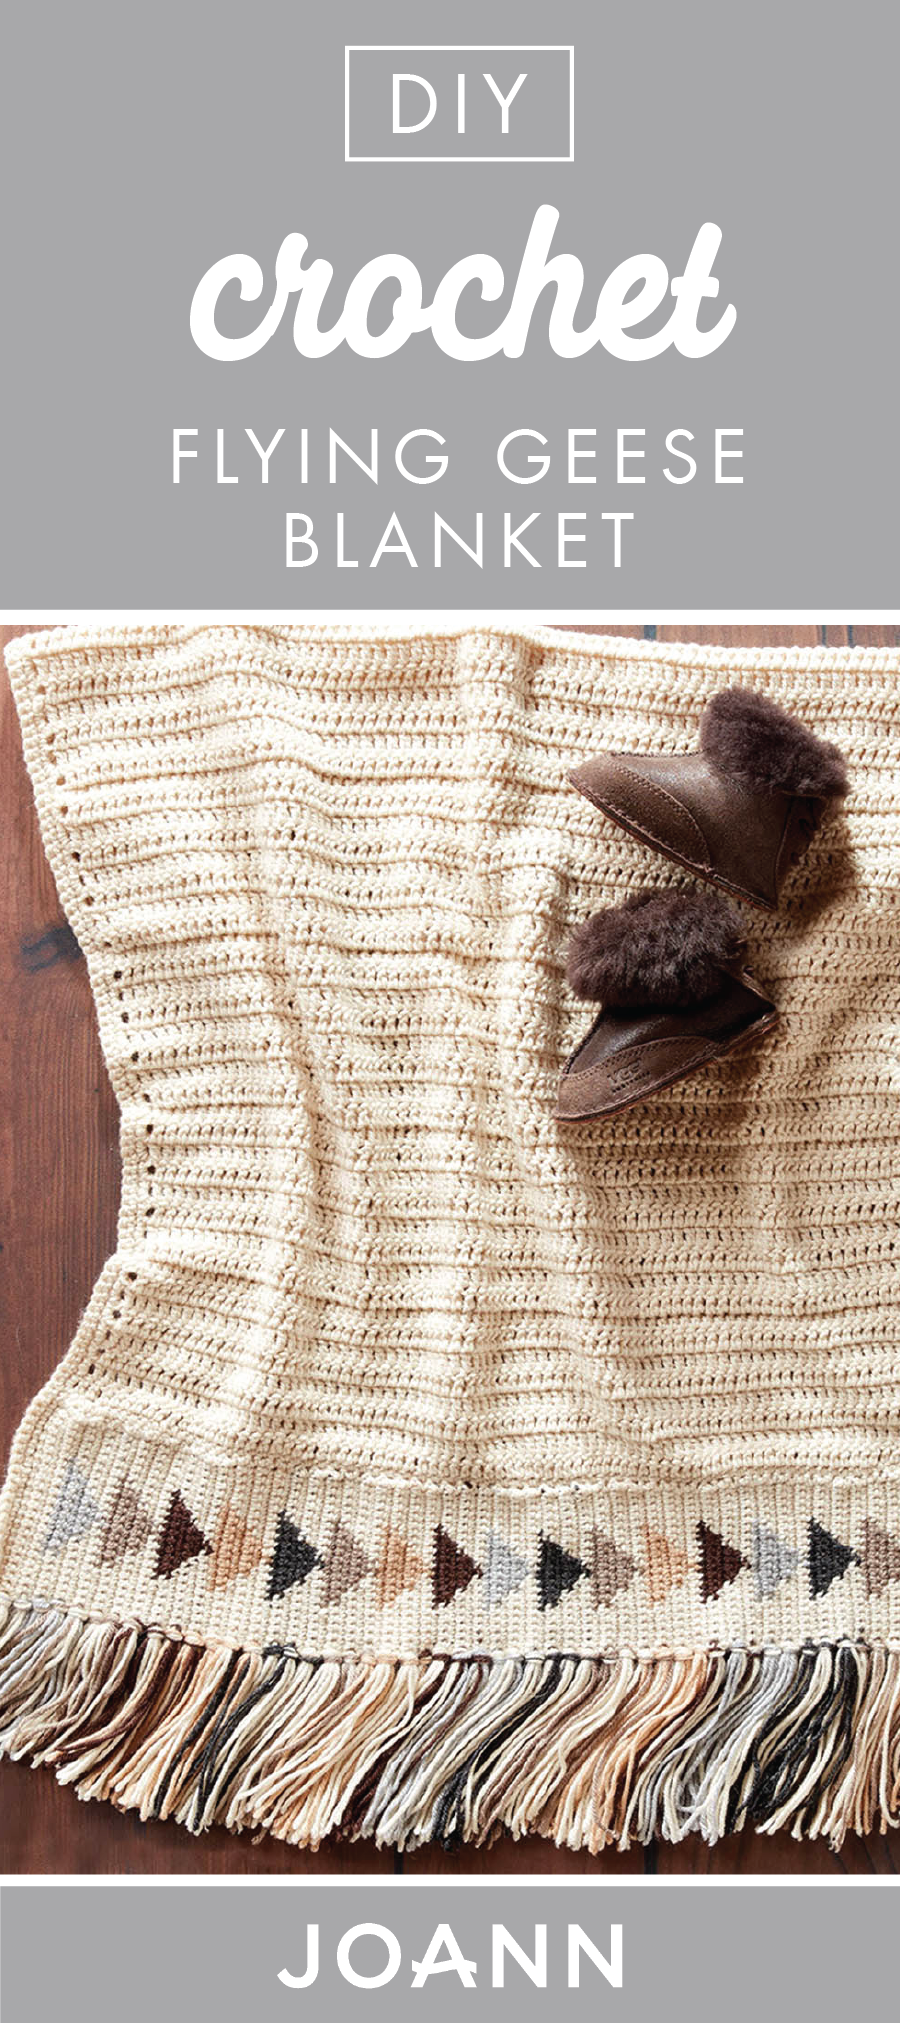 Full of handmade charm, this DIY Crochet Flying Geese Blanket ...